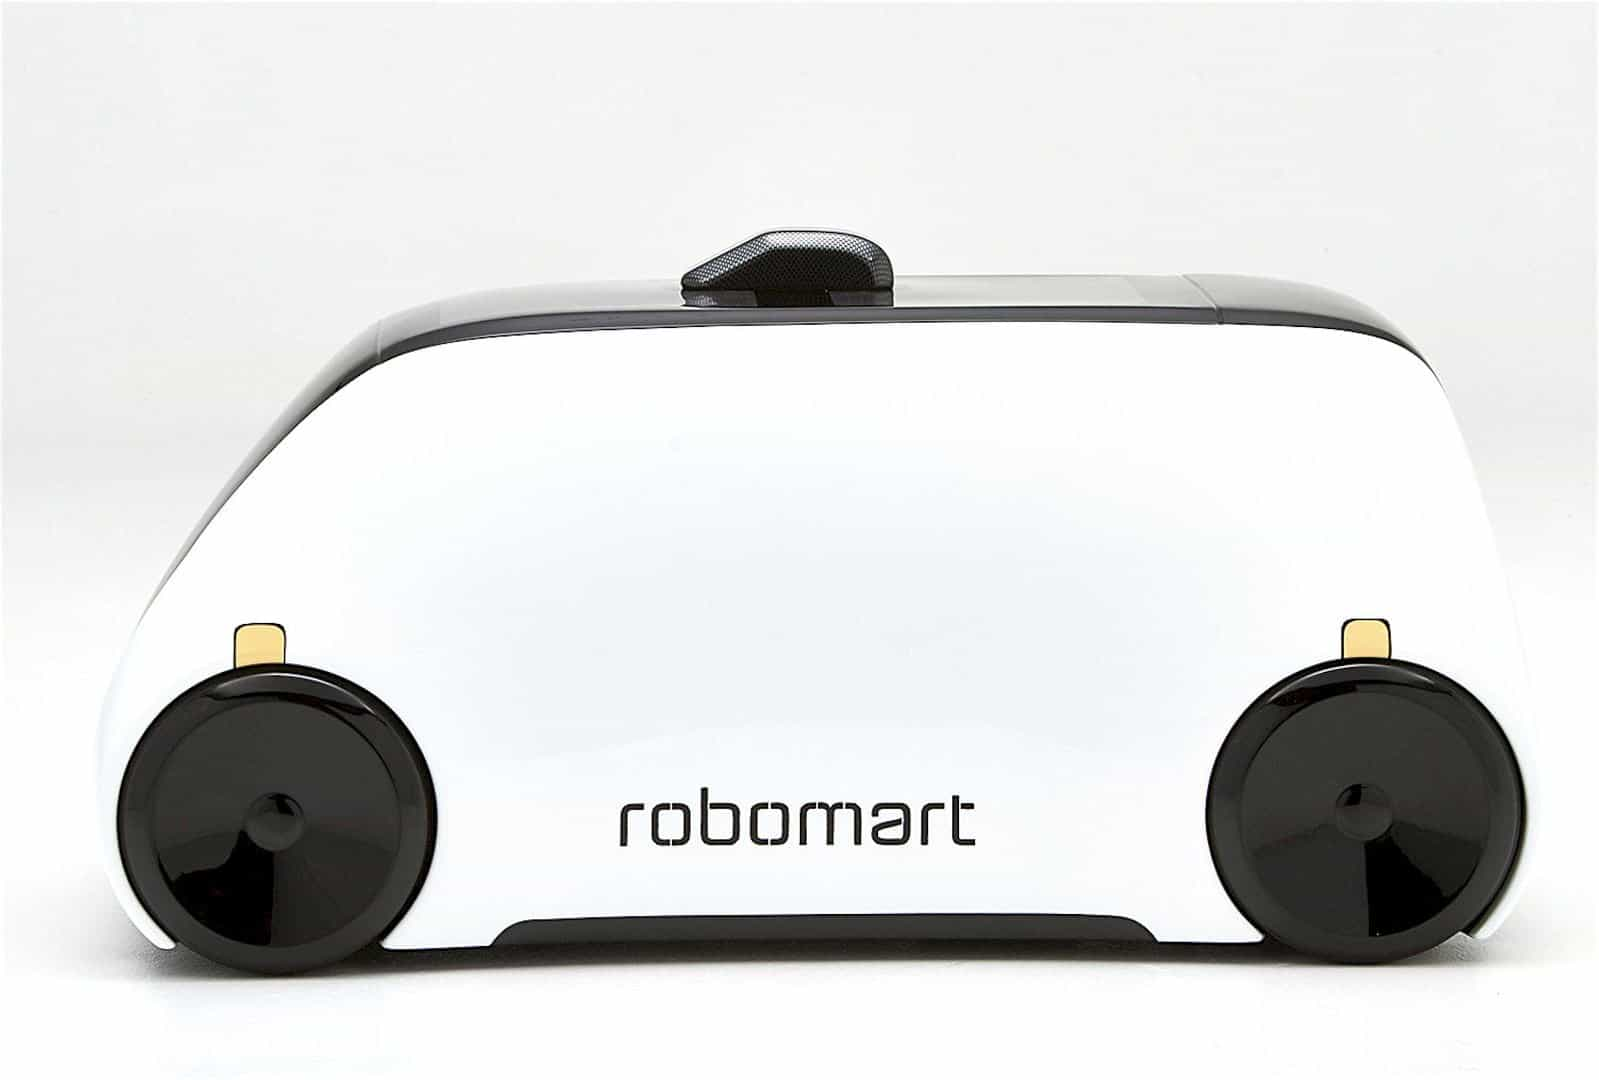 Robomarts: The World's First Self-Driving Store